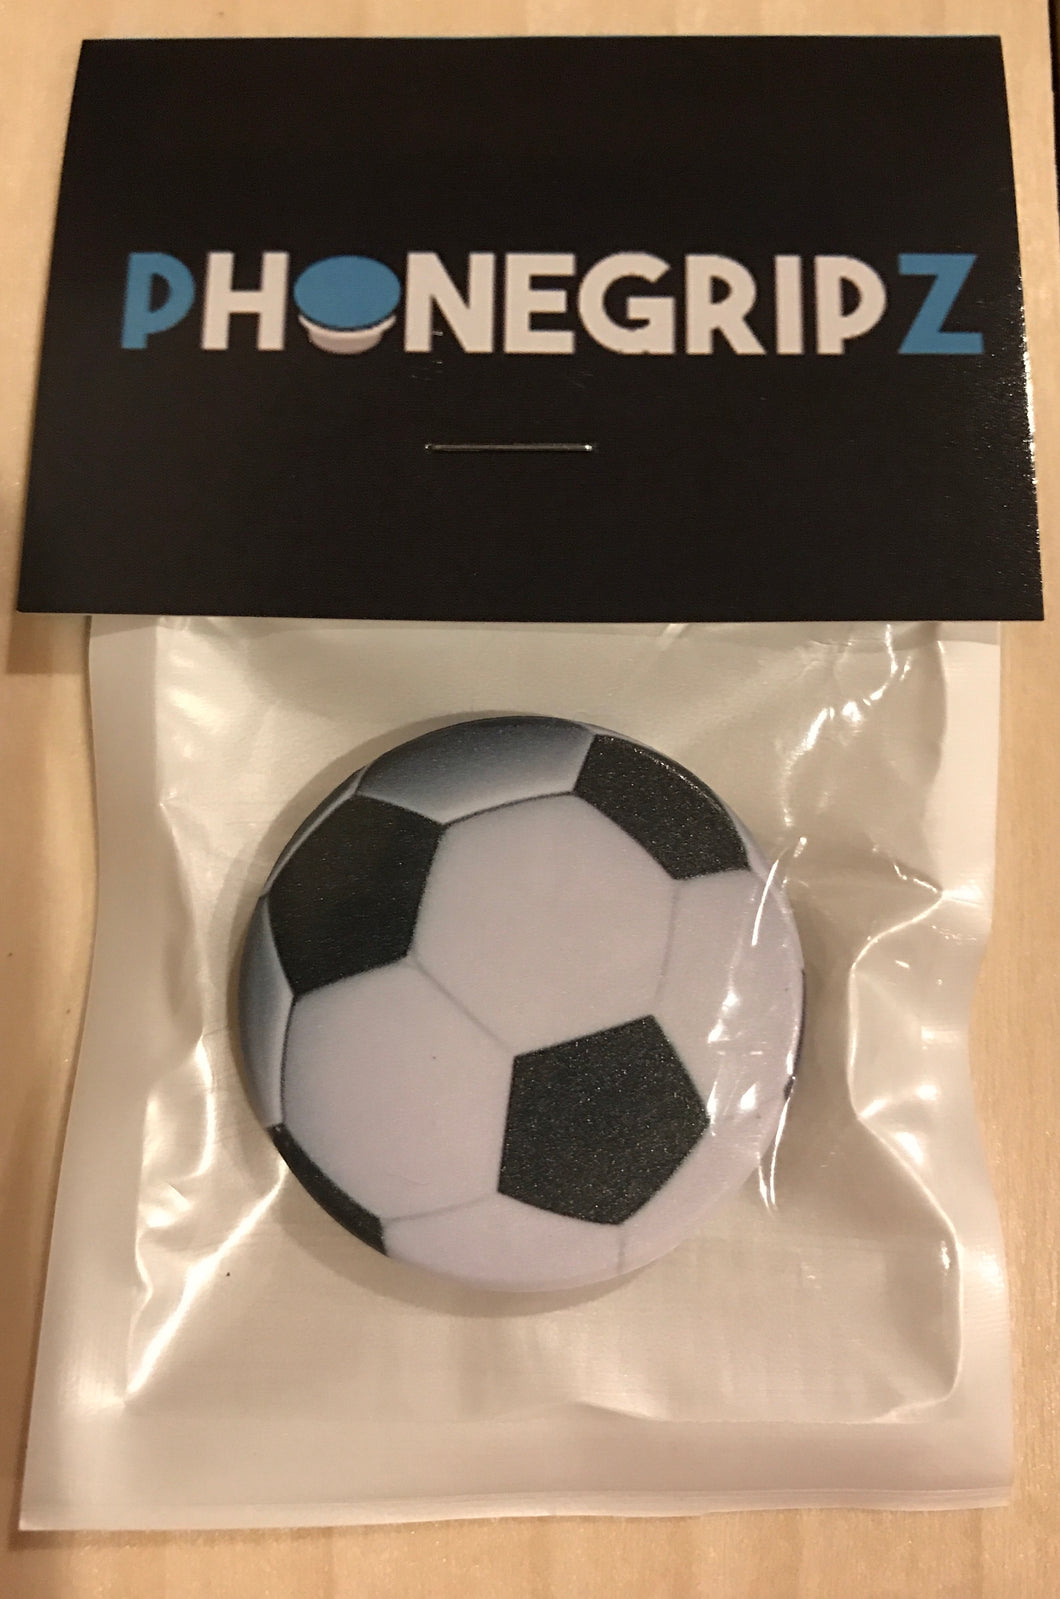 Soccer Universal Phone Grip Pop Out PhoneGripz